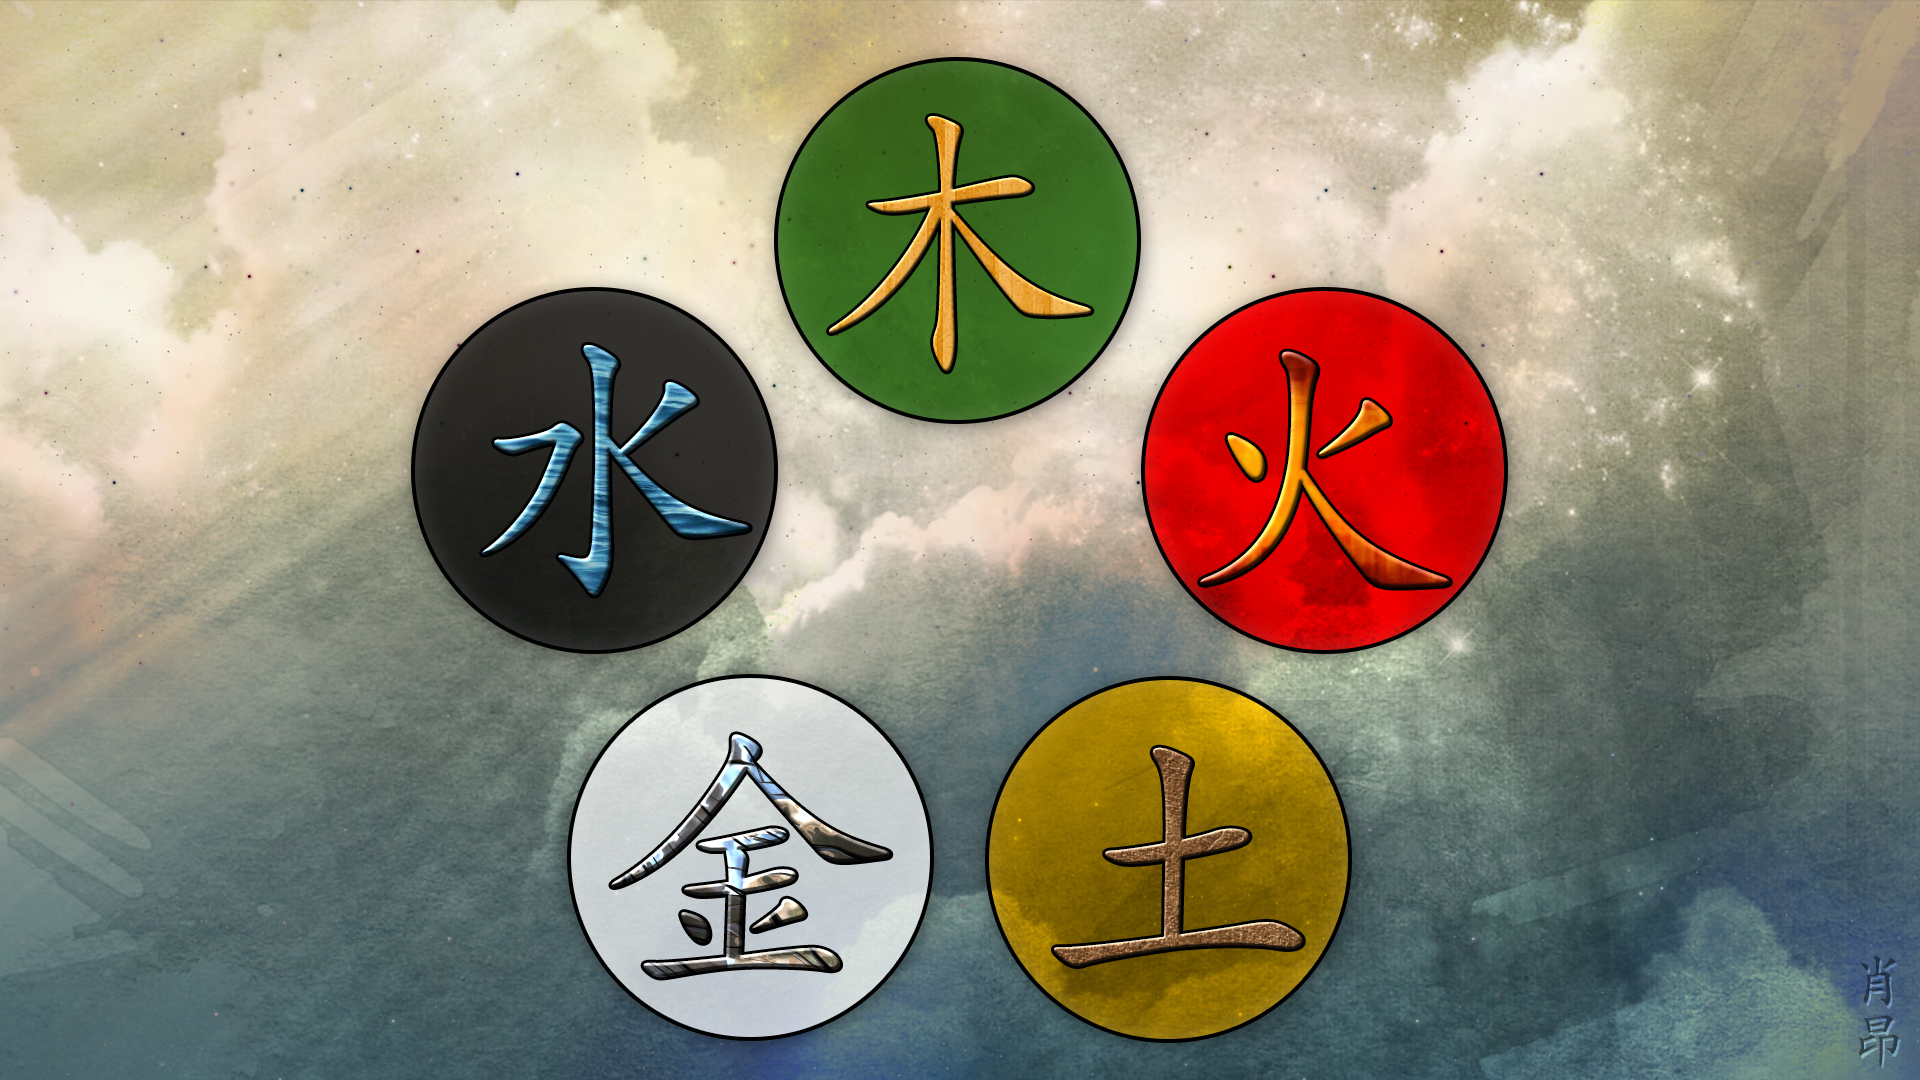 Five Elements Art : Wu xing the chinese elements by shaungsimpson on